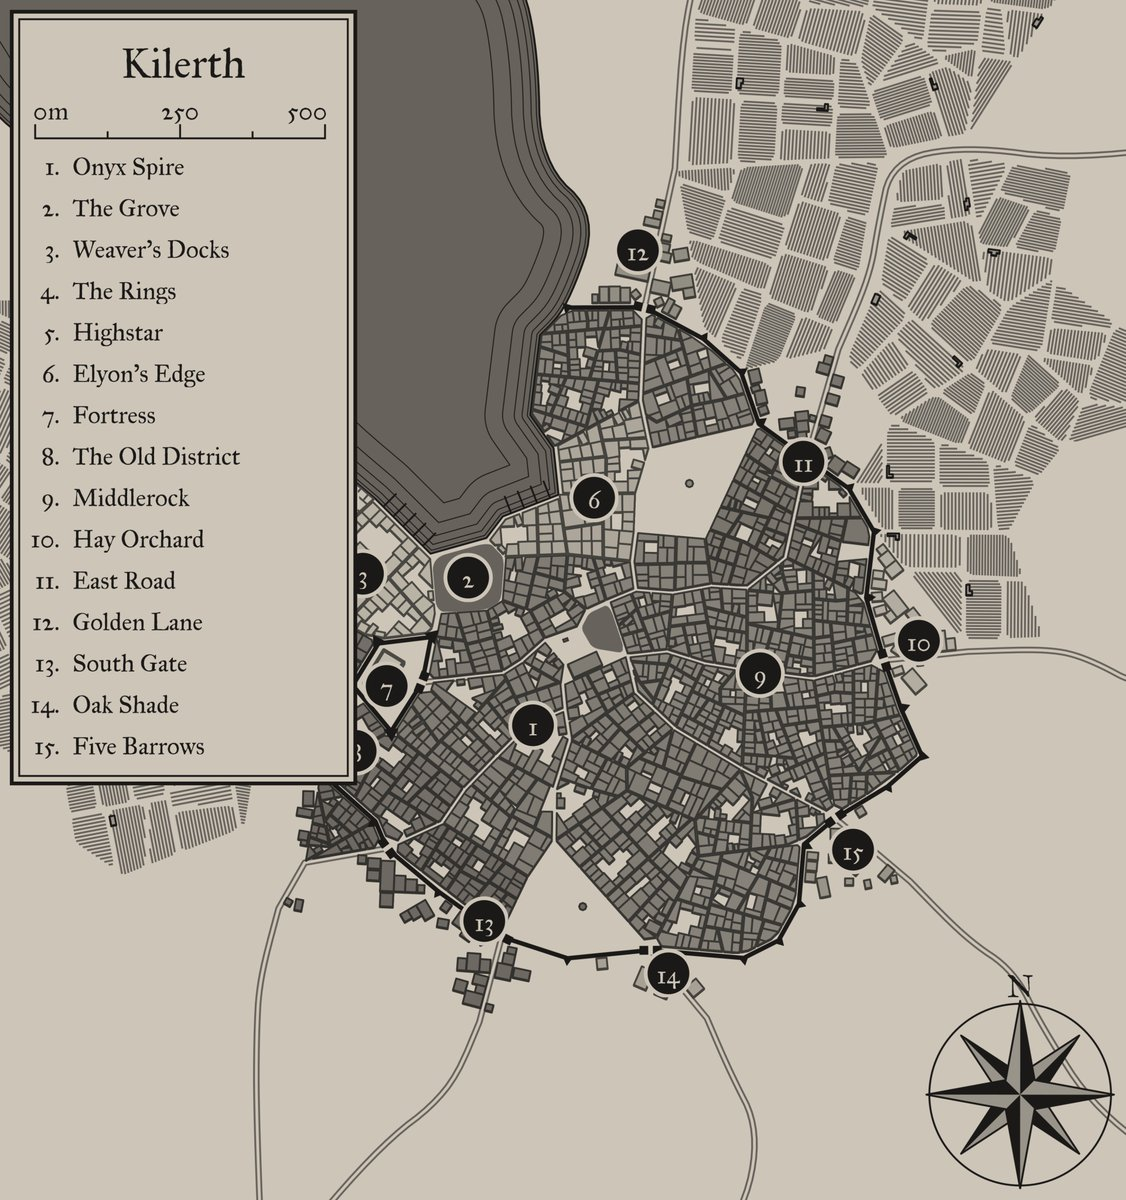 #ama with our DM and eternal torturer @_RKDnc as he works on Season 3 of the #podcast! Check out the map for the city of Kilerth, where the next season takes place! https://t.co/GVJGI24NmZ